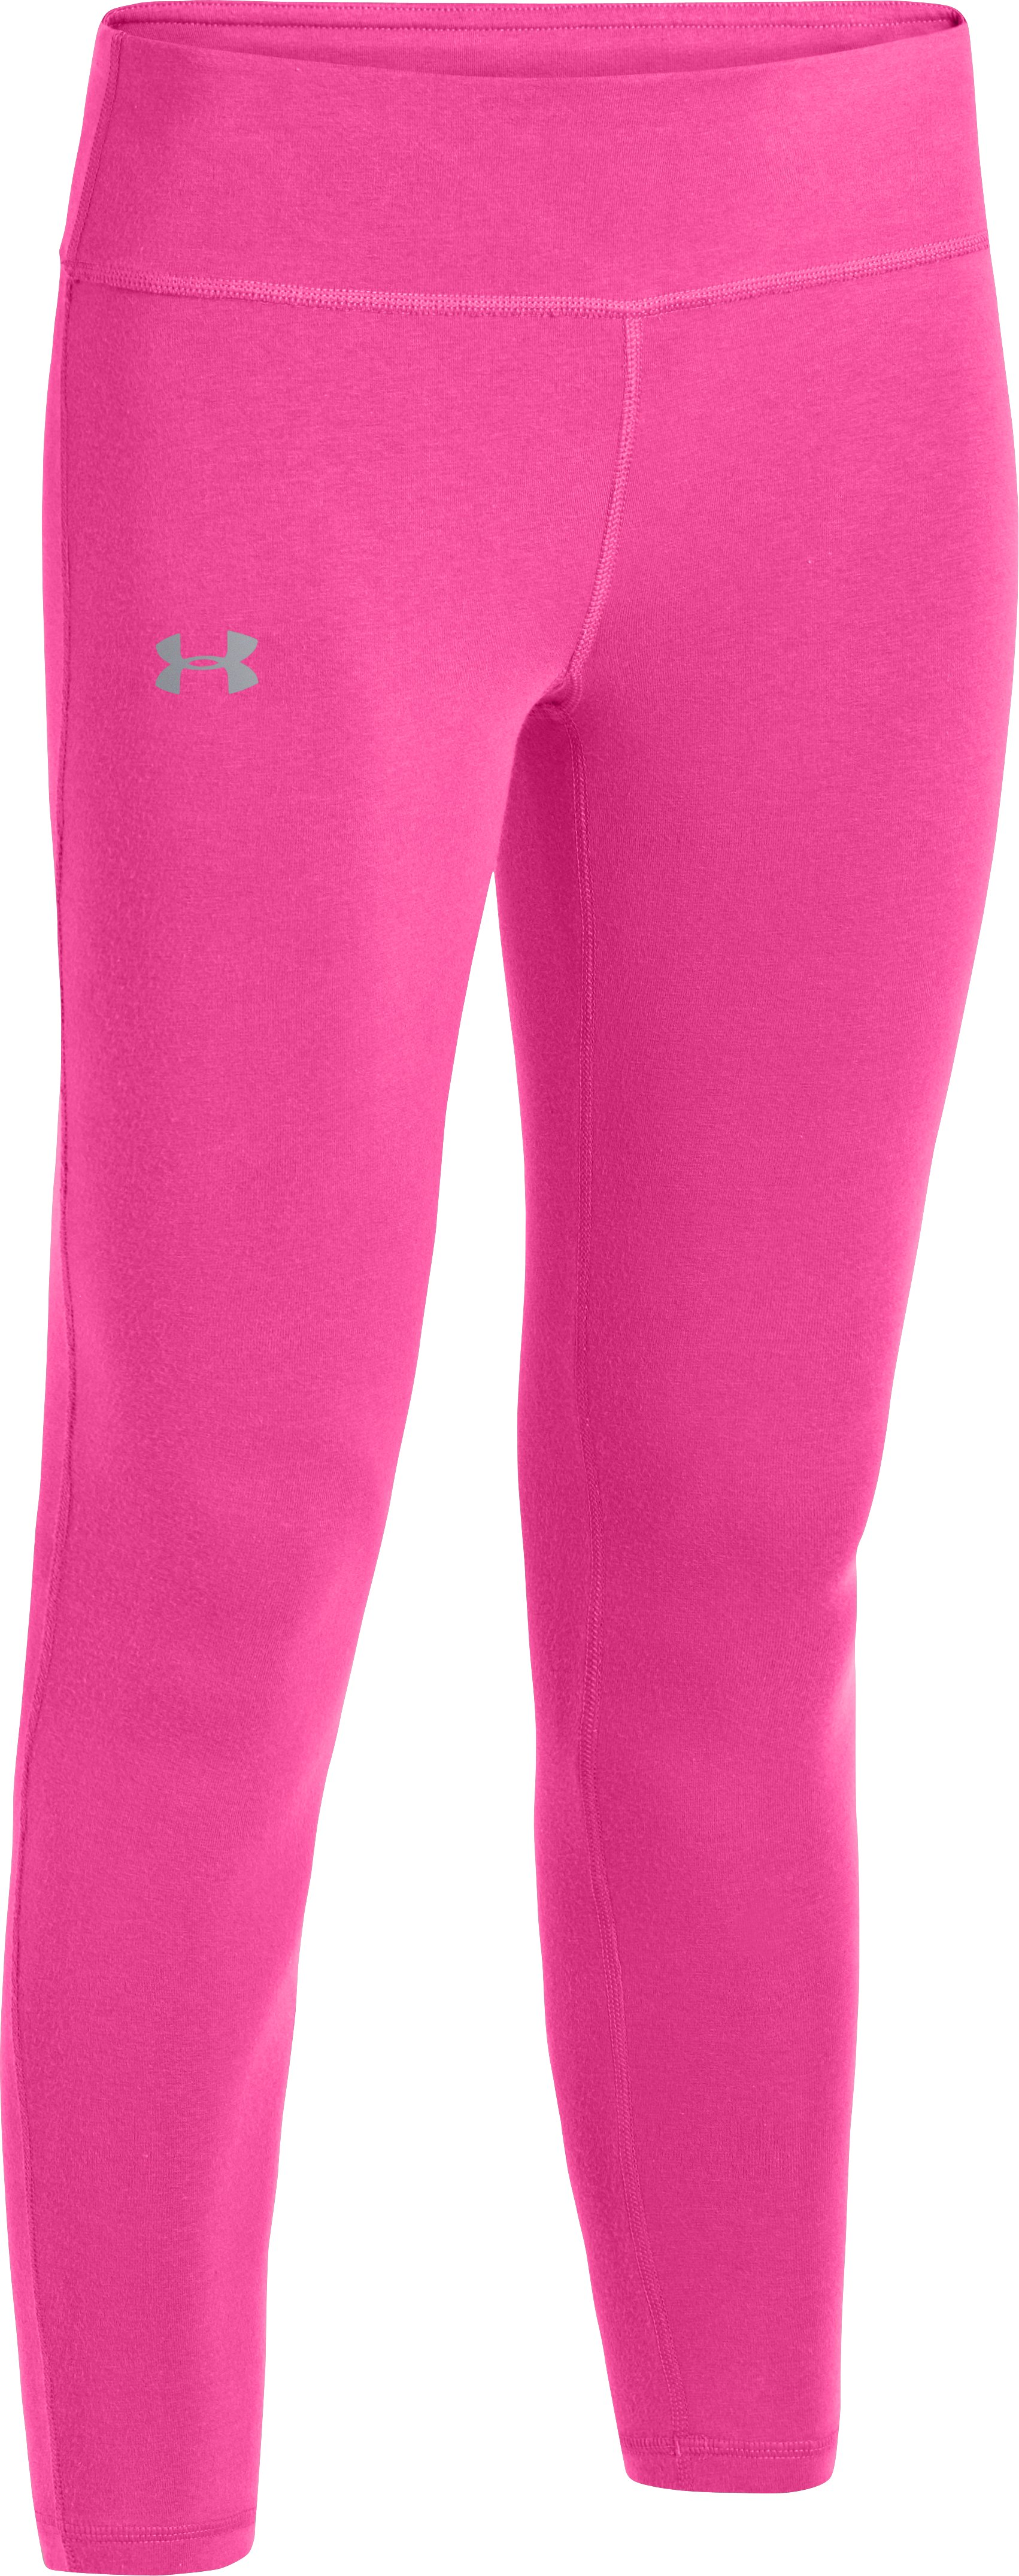 Girls' Ultimate Charged Cotton® Legging, CHAOS, zoomed image